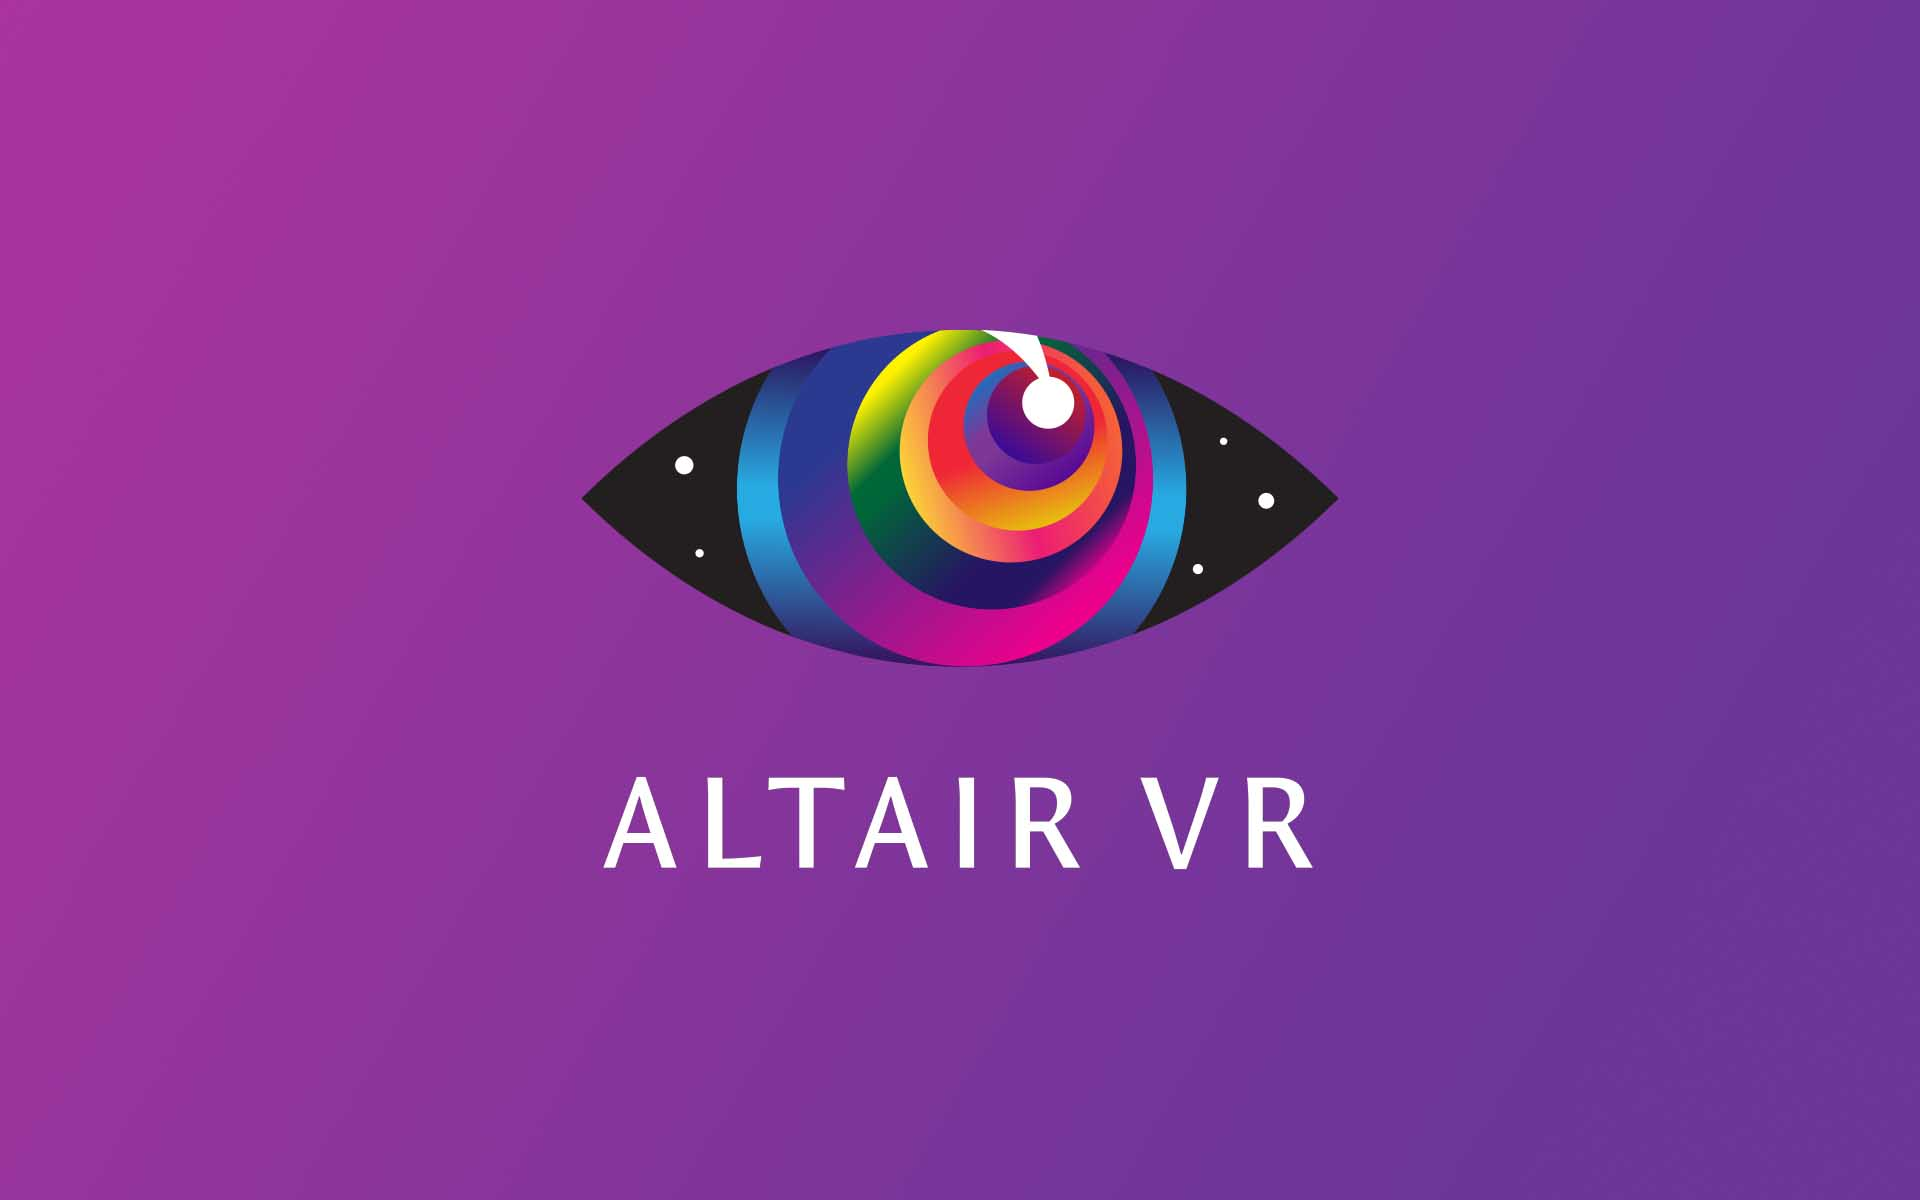 ALTAIR VR Predicts $535 Million in Revenue Over 3 Years